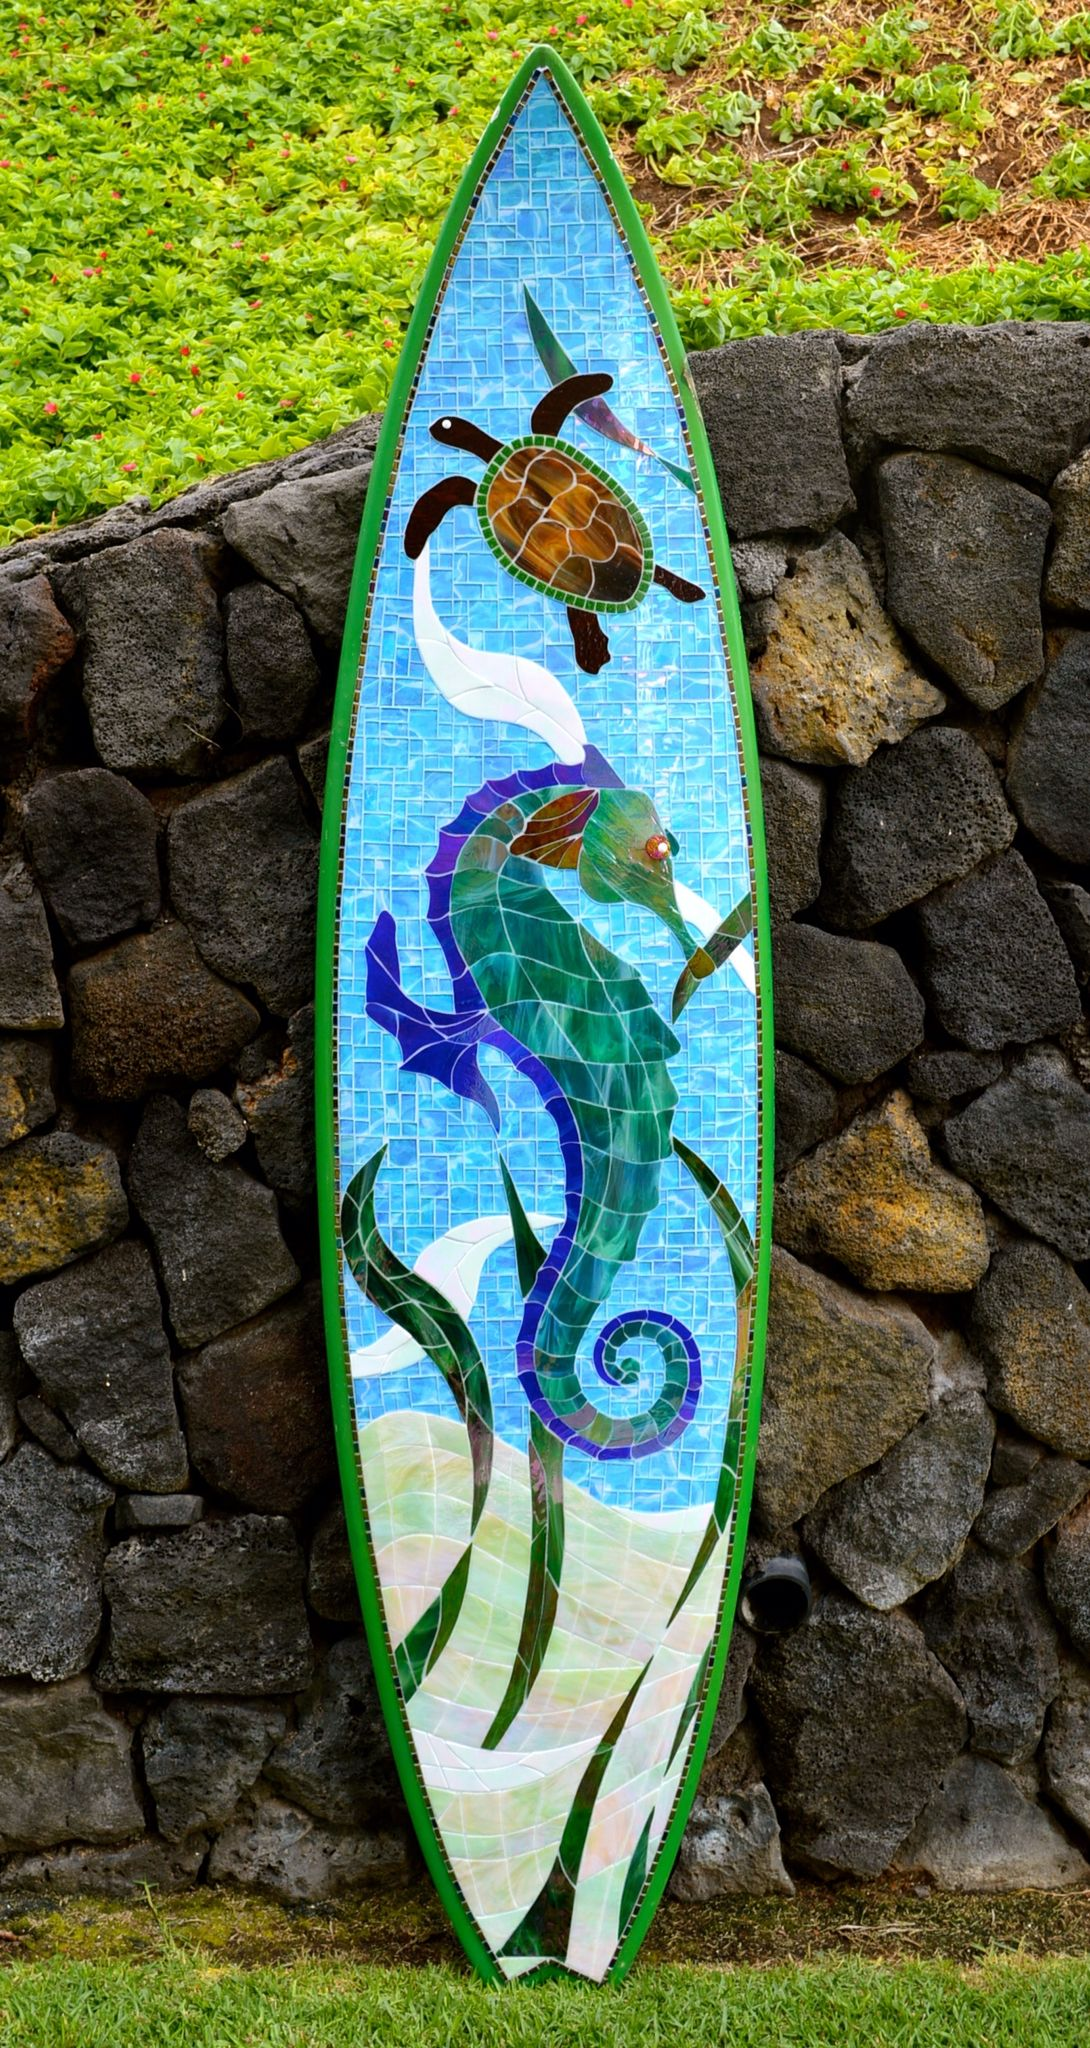 Latest Project - Stained Glass Mosaic Surfboard